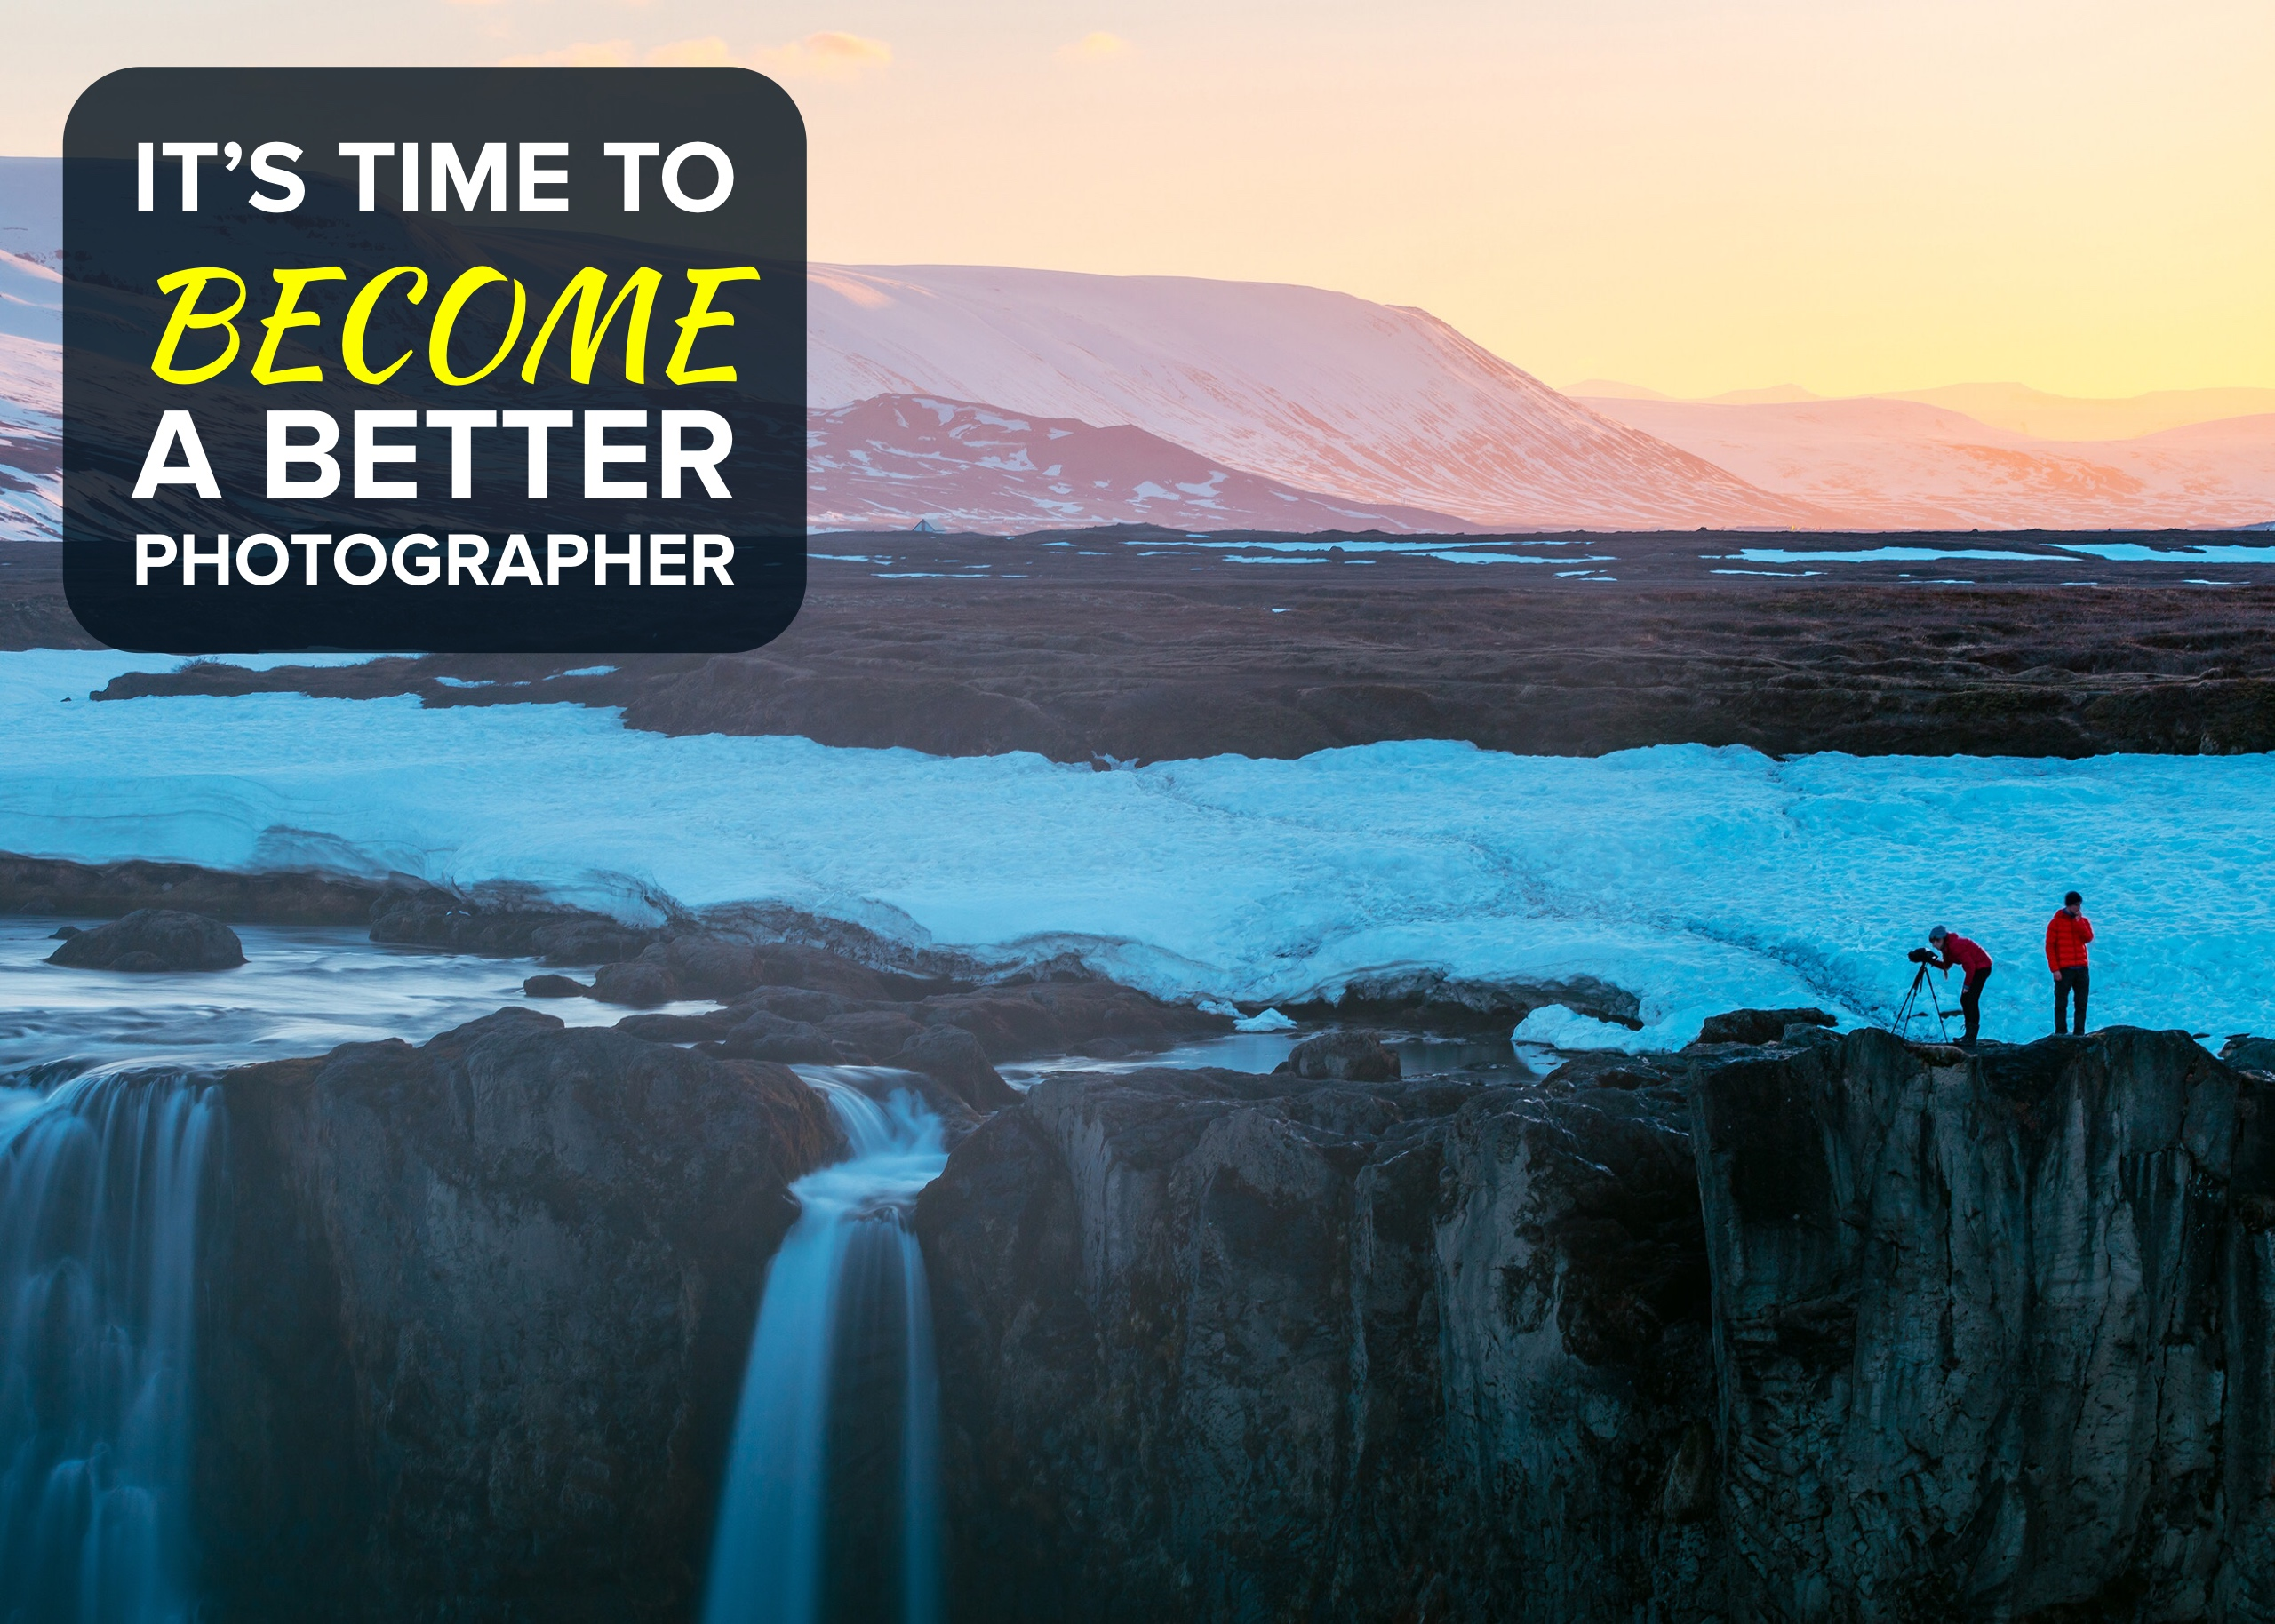 Can You Make a Living Doing Photography? - The